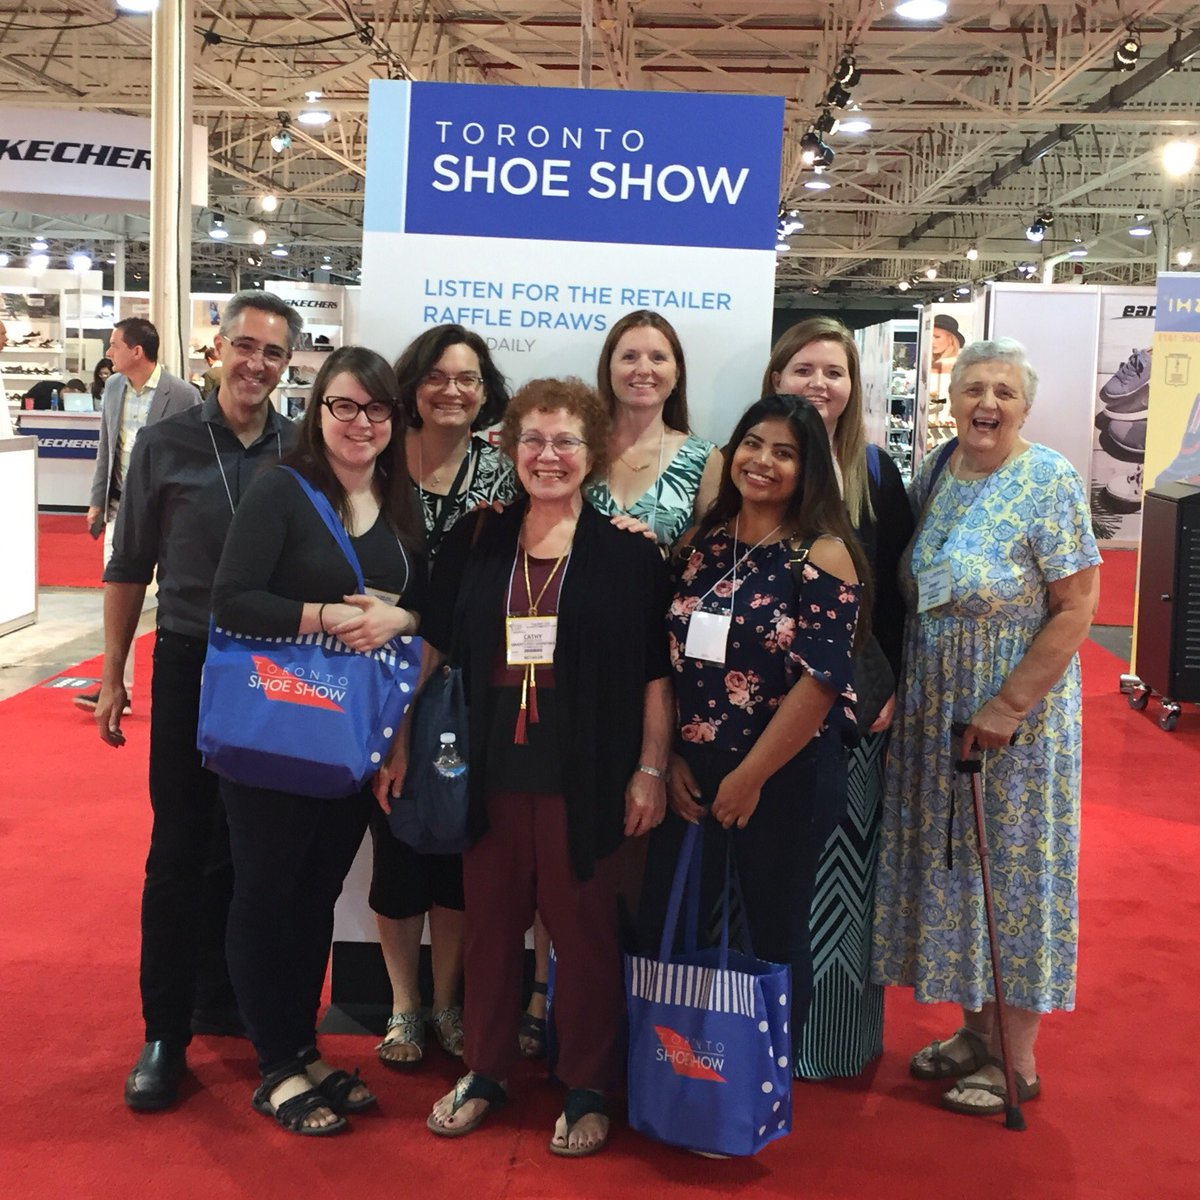 test Twitter Media - Another fun day looking at shoes & sandals for Spring/Summer 2018!@TorontoShoeShow #GradyCrew 👣 https://t.co/LWaC6yYNLW